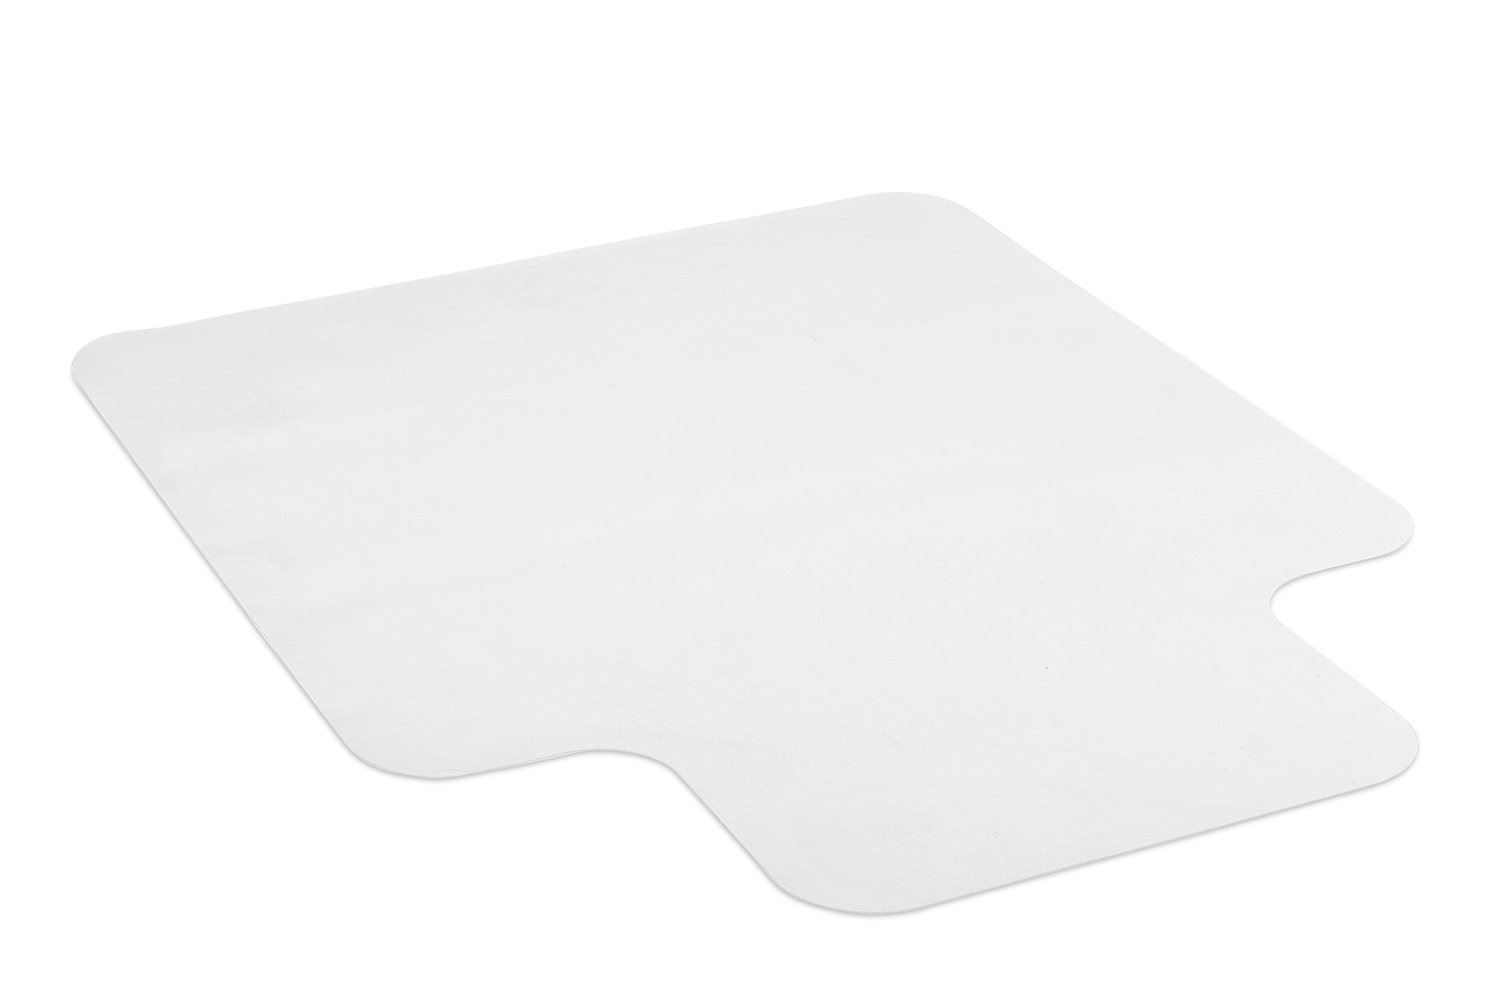 Mount-It! Clear Chair Mat for Carpet, Non-Slip Studded Office Chair Floor Protector, Heavy-Duty Non-Toxic PVC Material, Use in Home or Office, 47'' x 35.5''